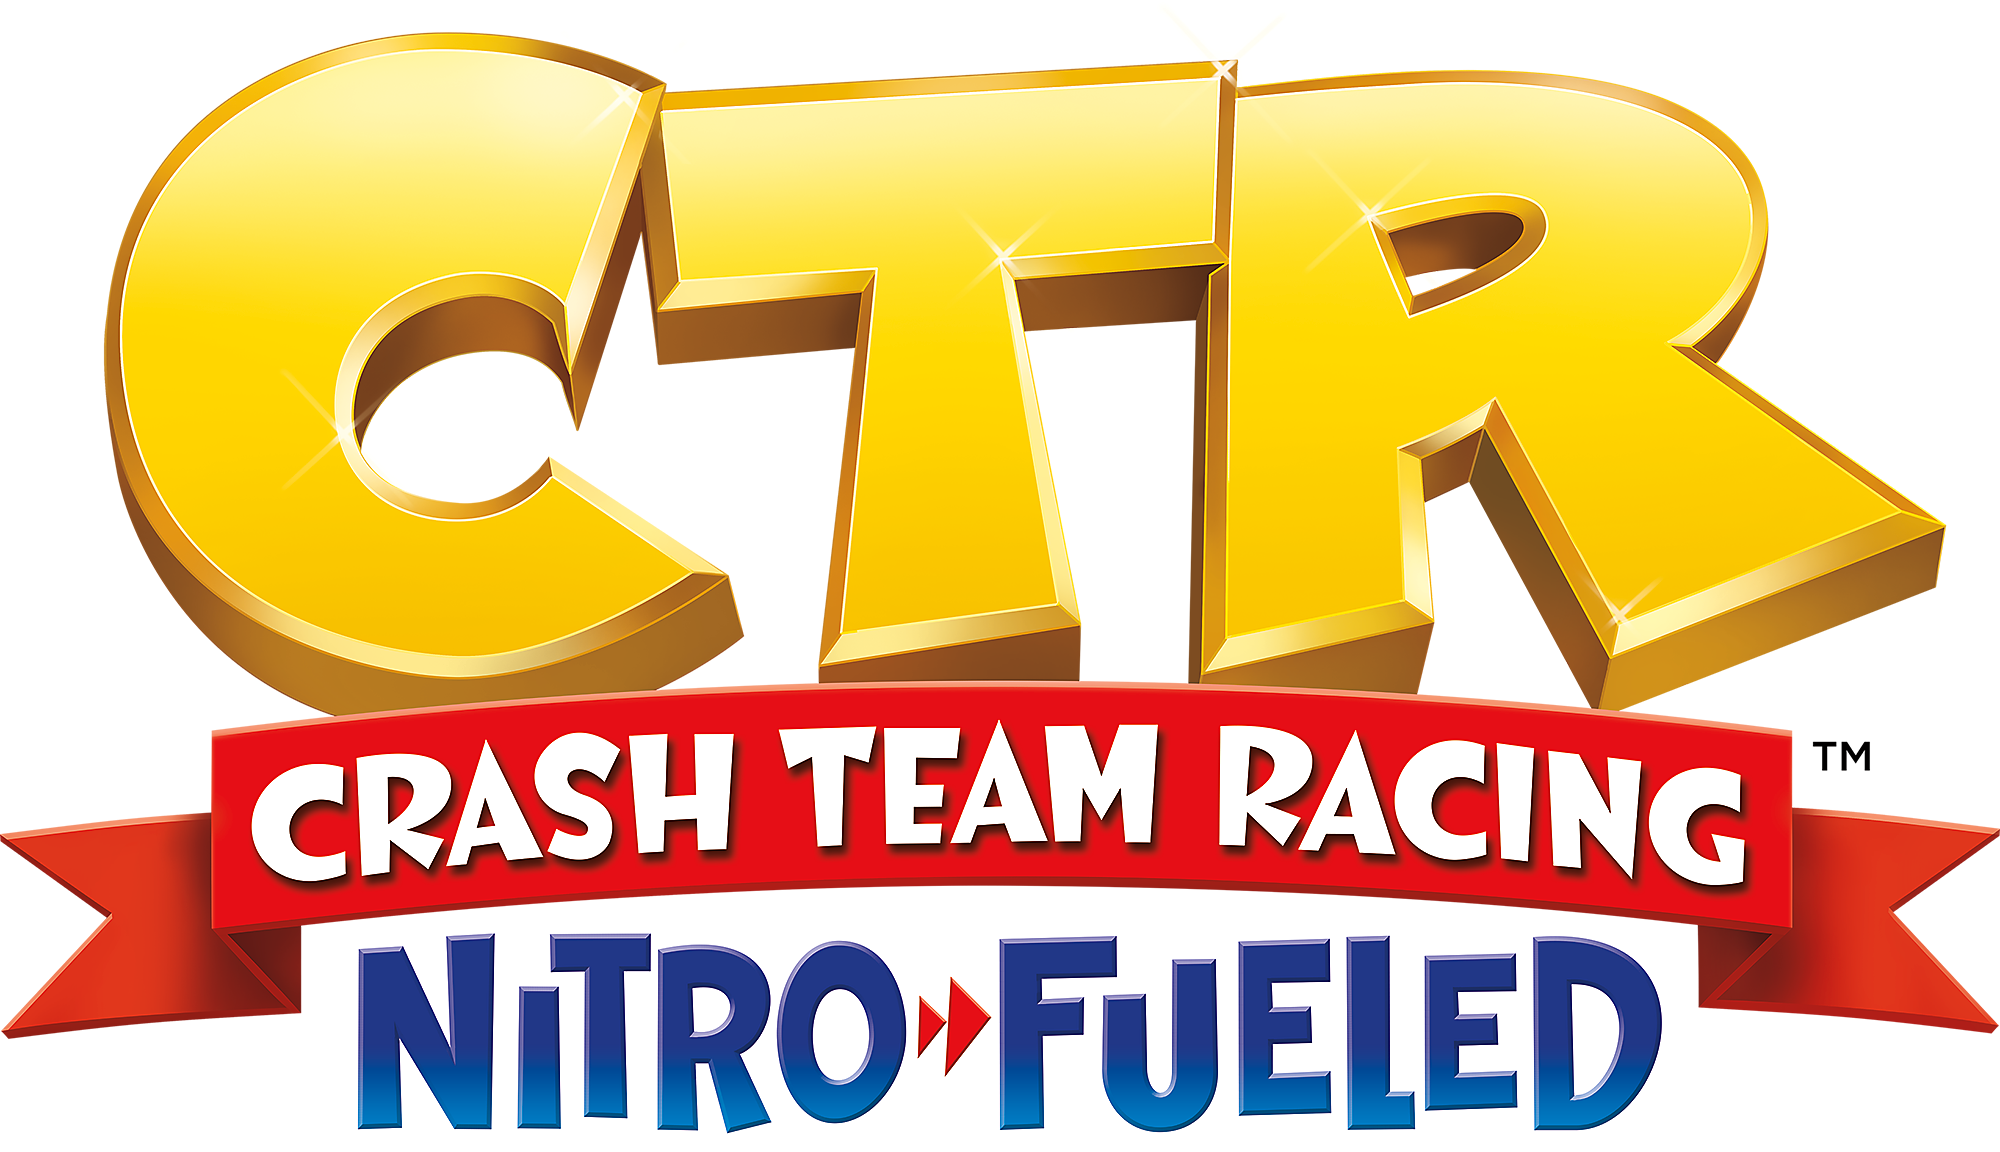 Logotipo de Crash Team Racing Nitro-Fueled